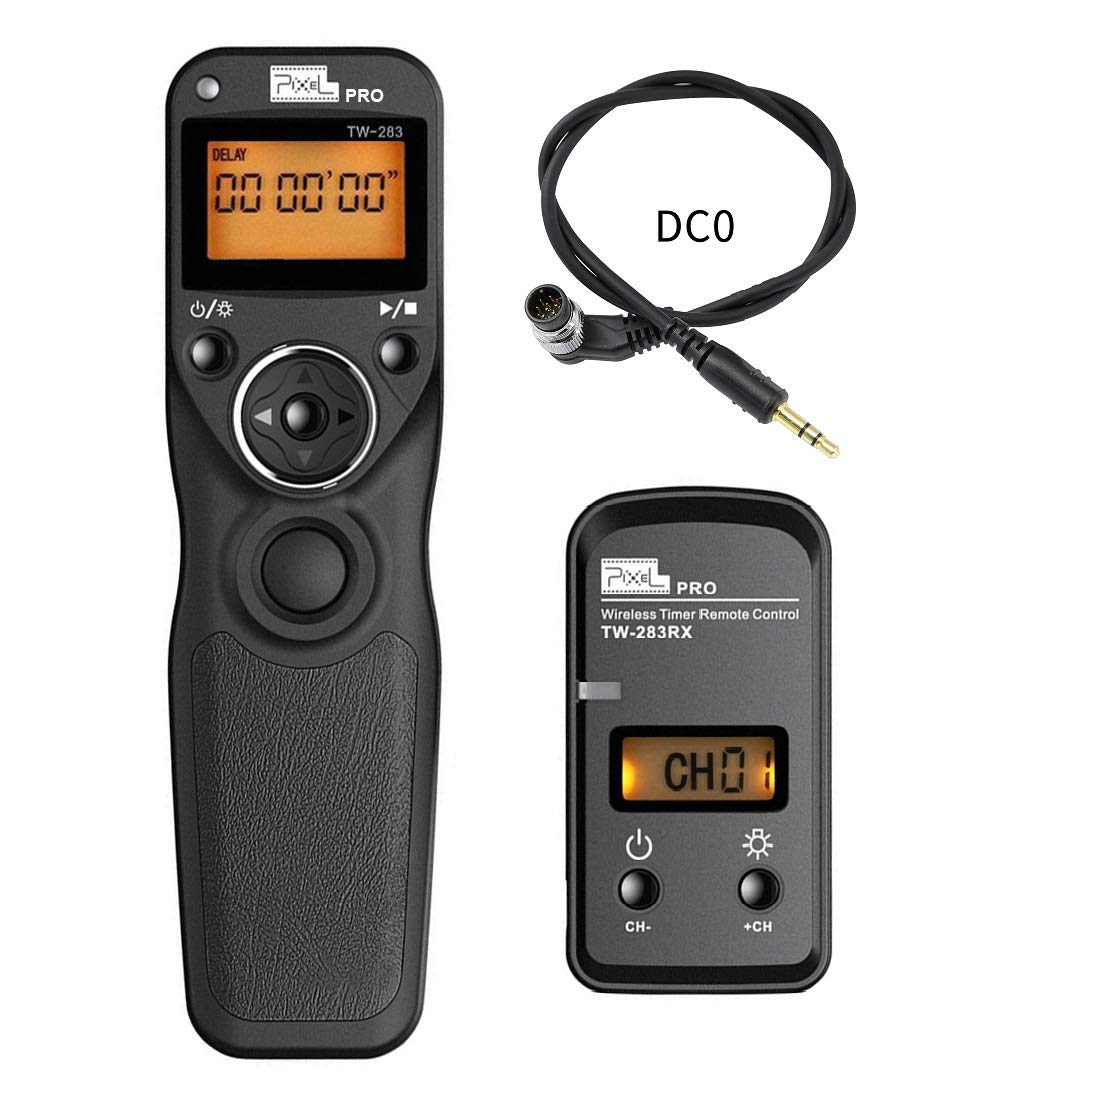 Wireless Shutter Release Timer Remote Control for Nikon SLR DC0 D800 D810 D700 D500 D200 Series D4 D5 F5 F6 F100, Fujilm S5,S3 PRO Kodak DCS-14N and Many More Types of SLR